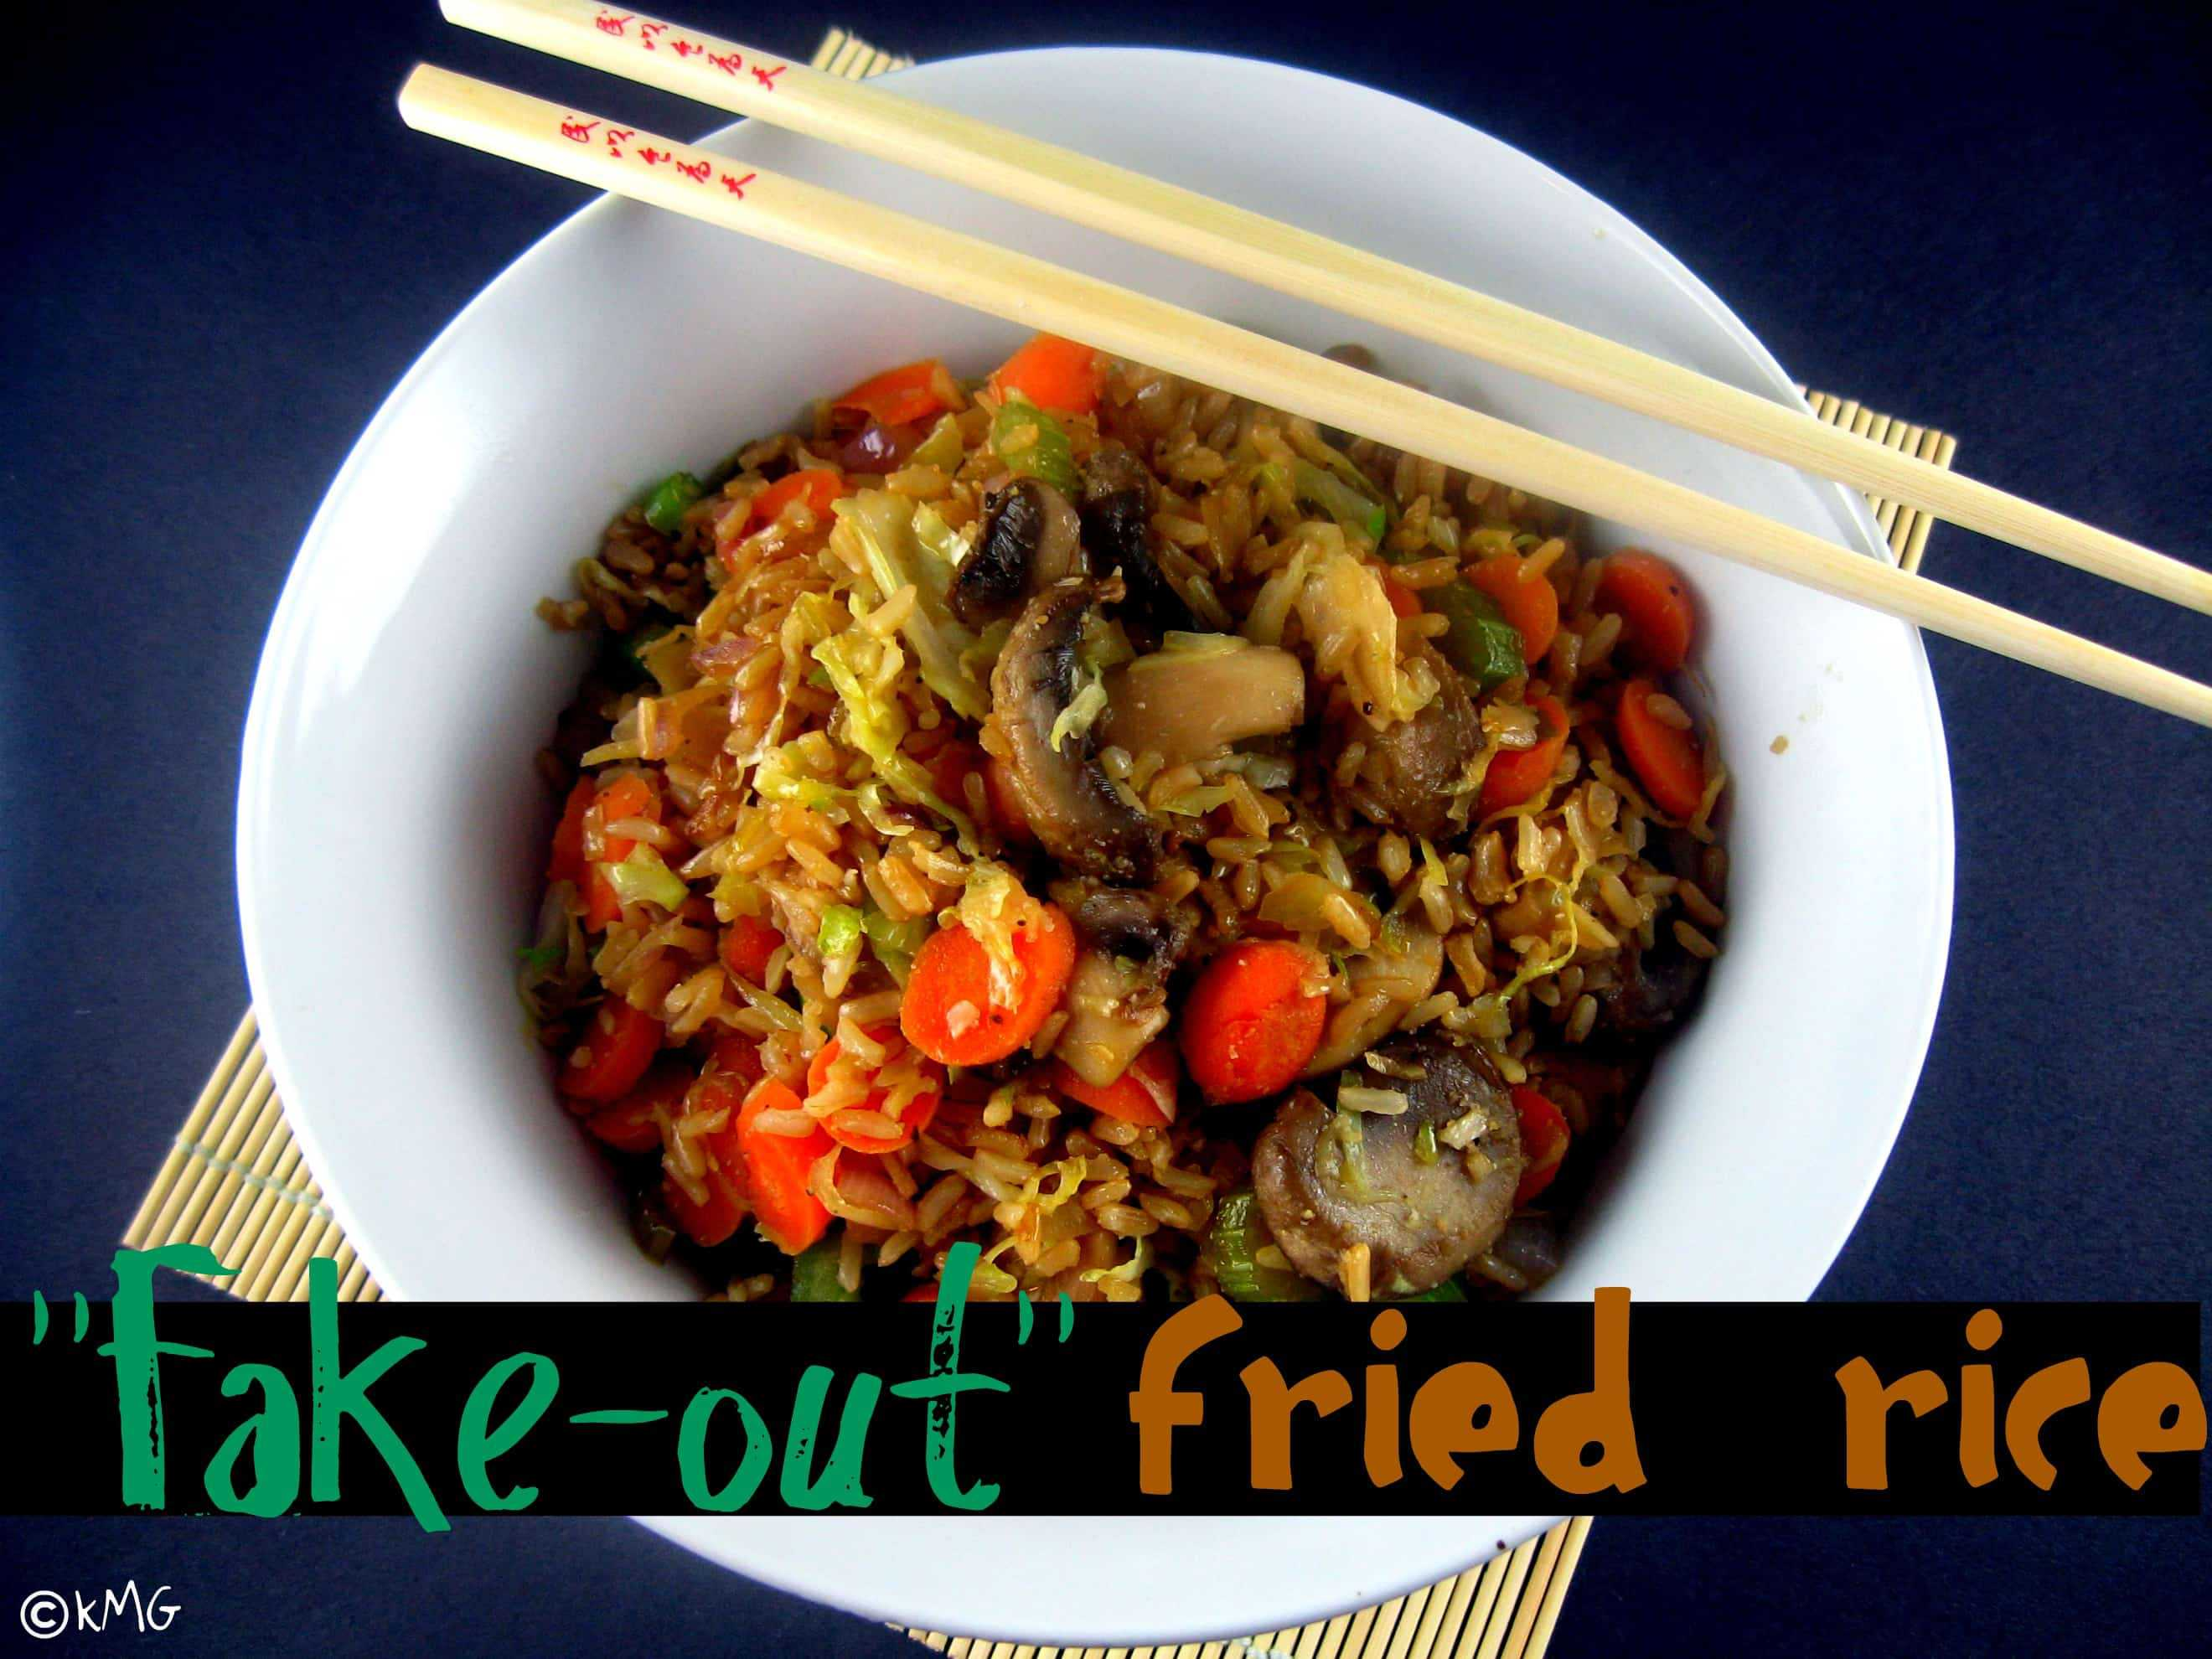 Fake-Out Fried Rice